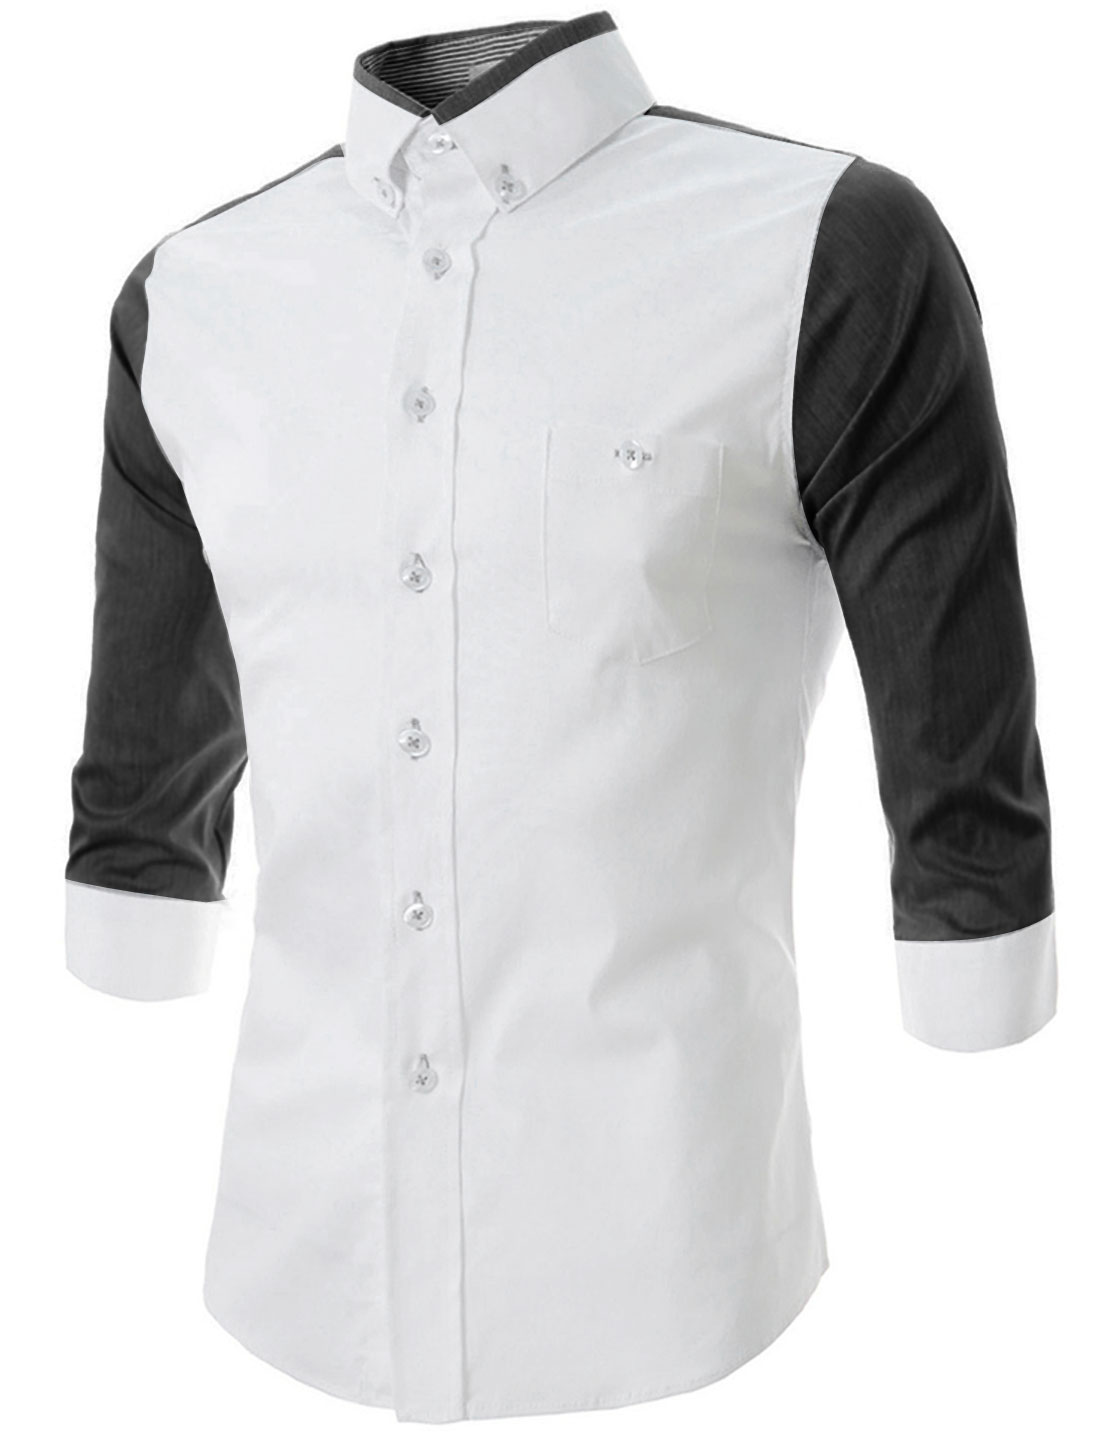 Men Convertible Collar Chest Pockets Panel Half Sleeve Shirt White M